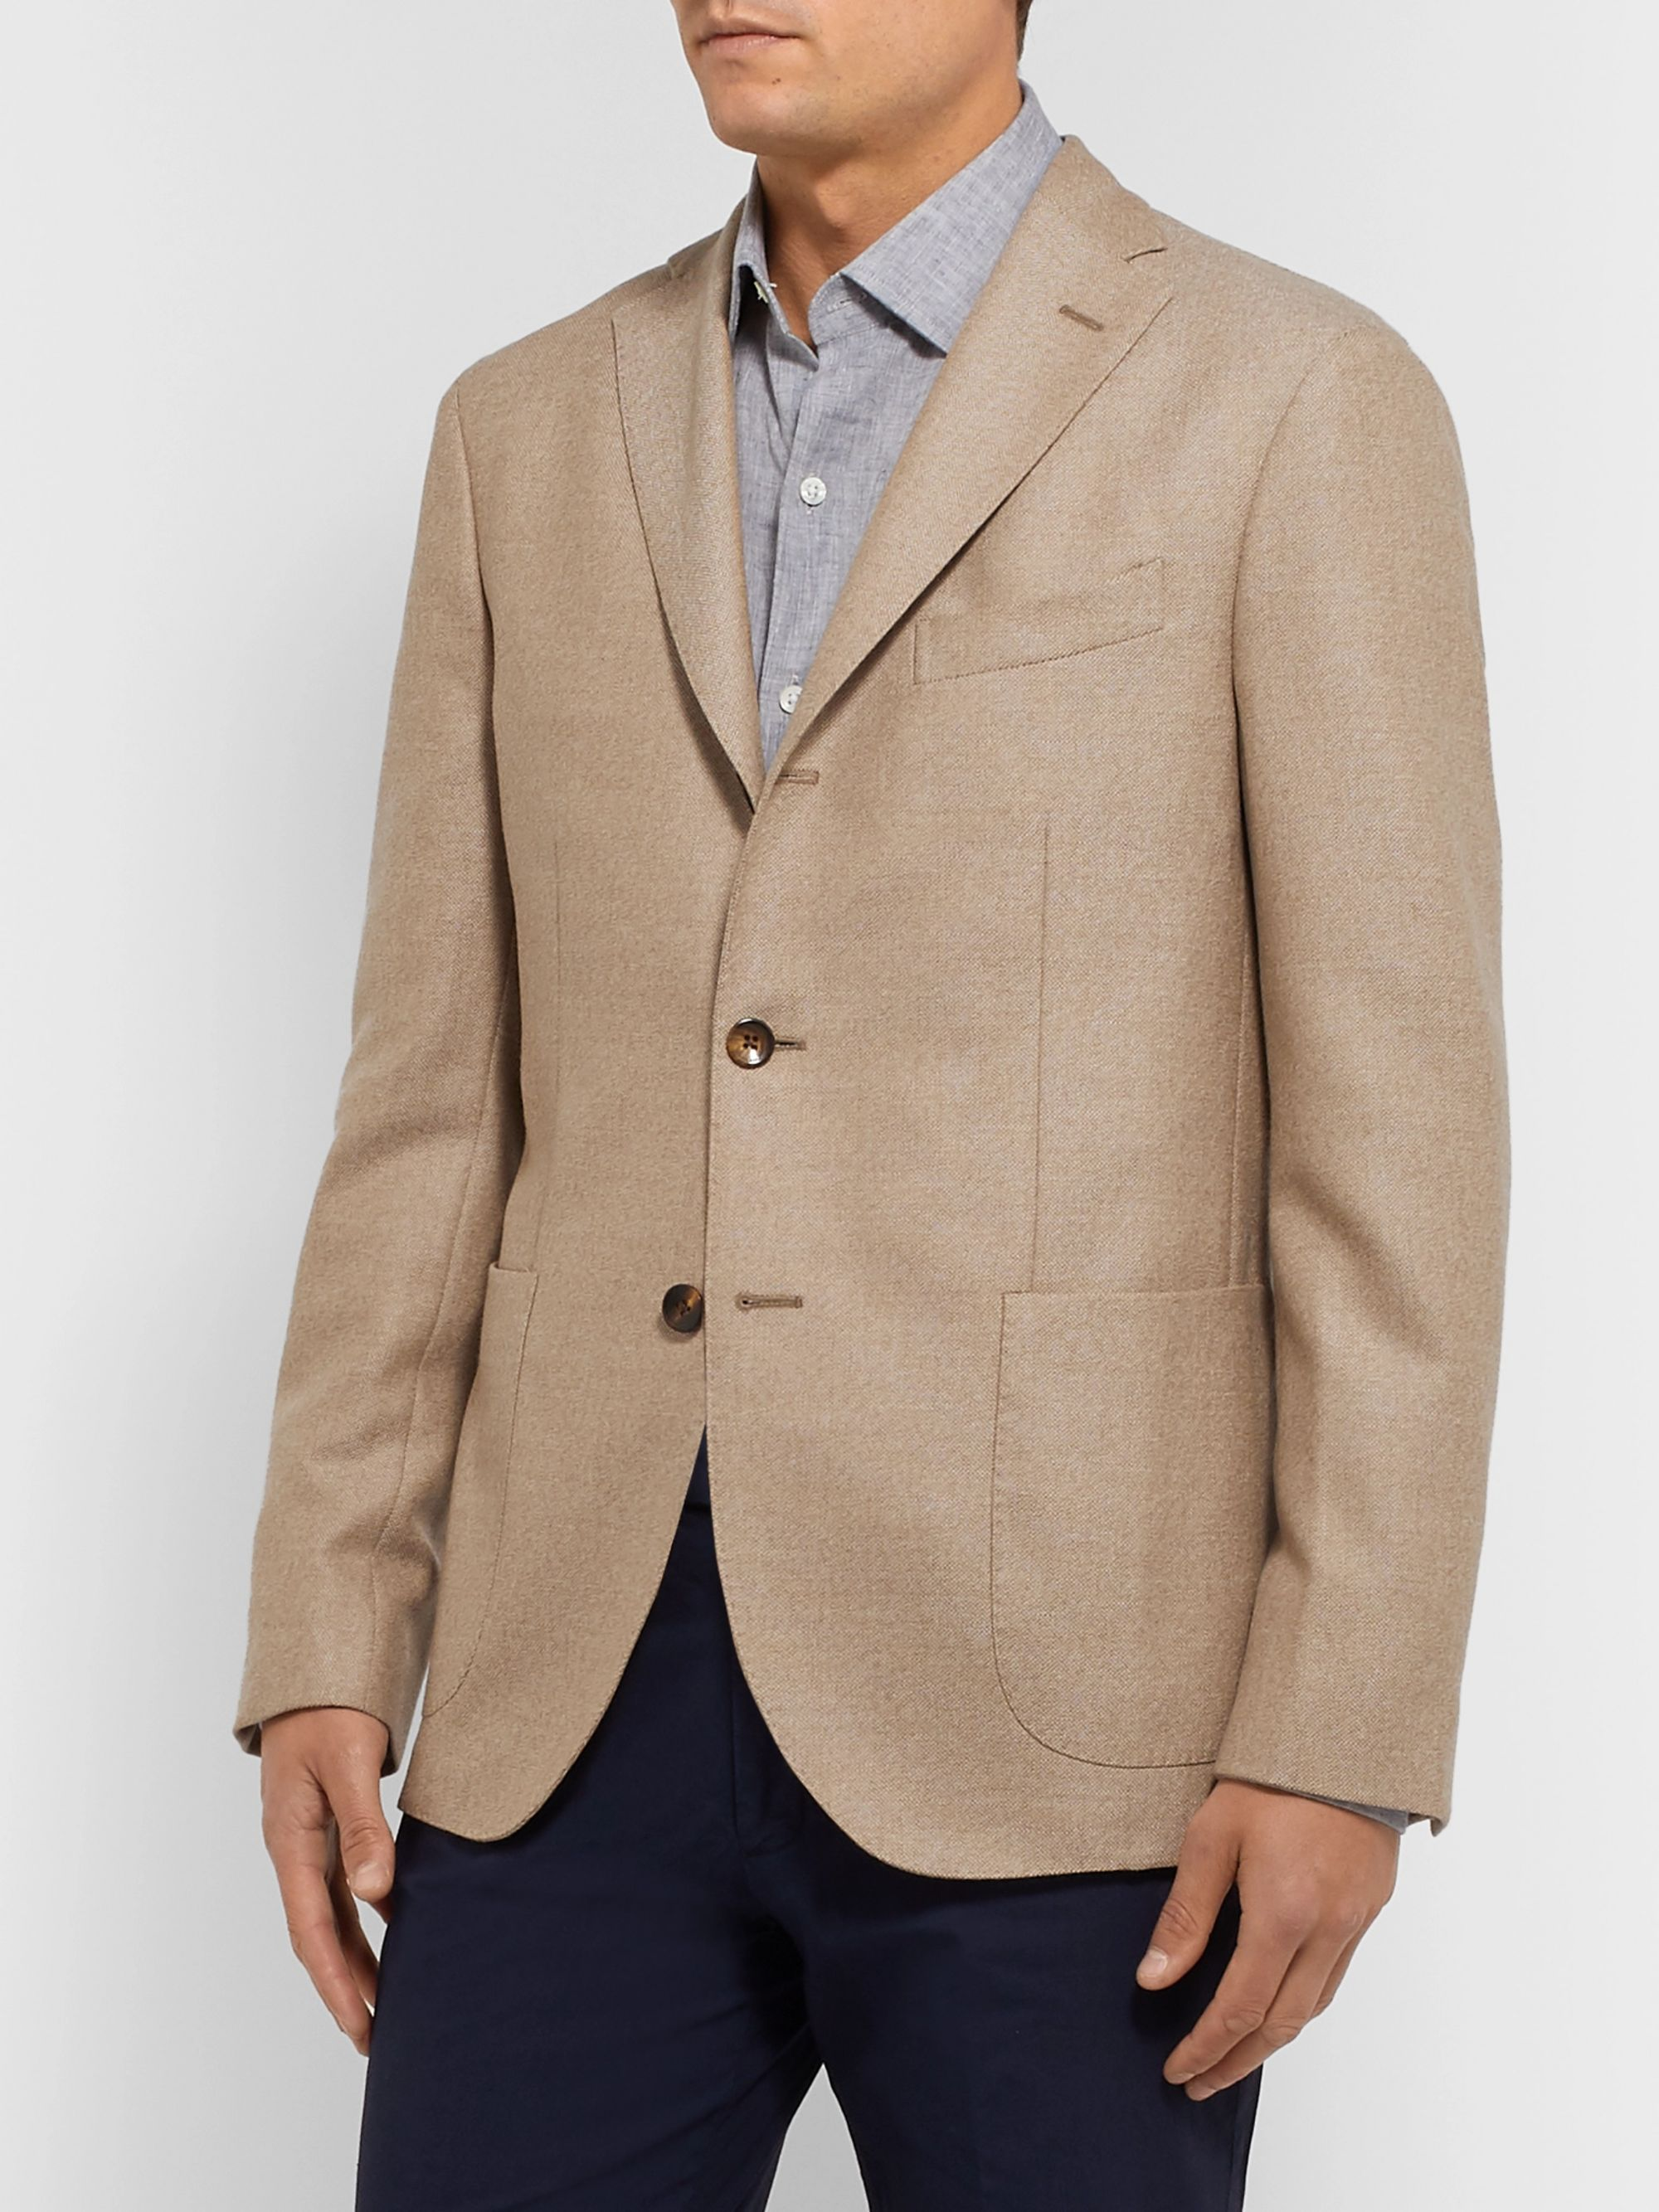 Boglioli Beige K-Jacket Slim-Fit Unstructured Virgin Wool-Hopsack Blazer